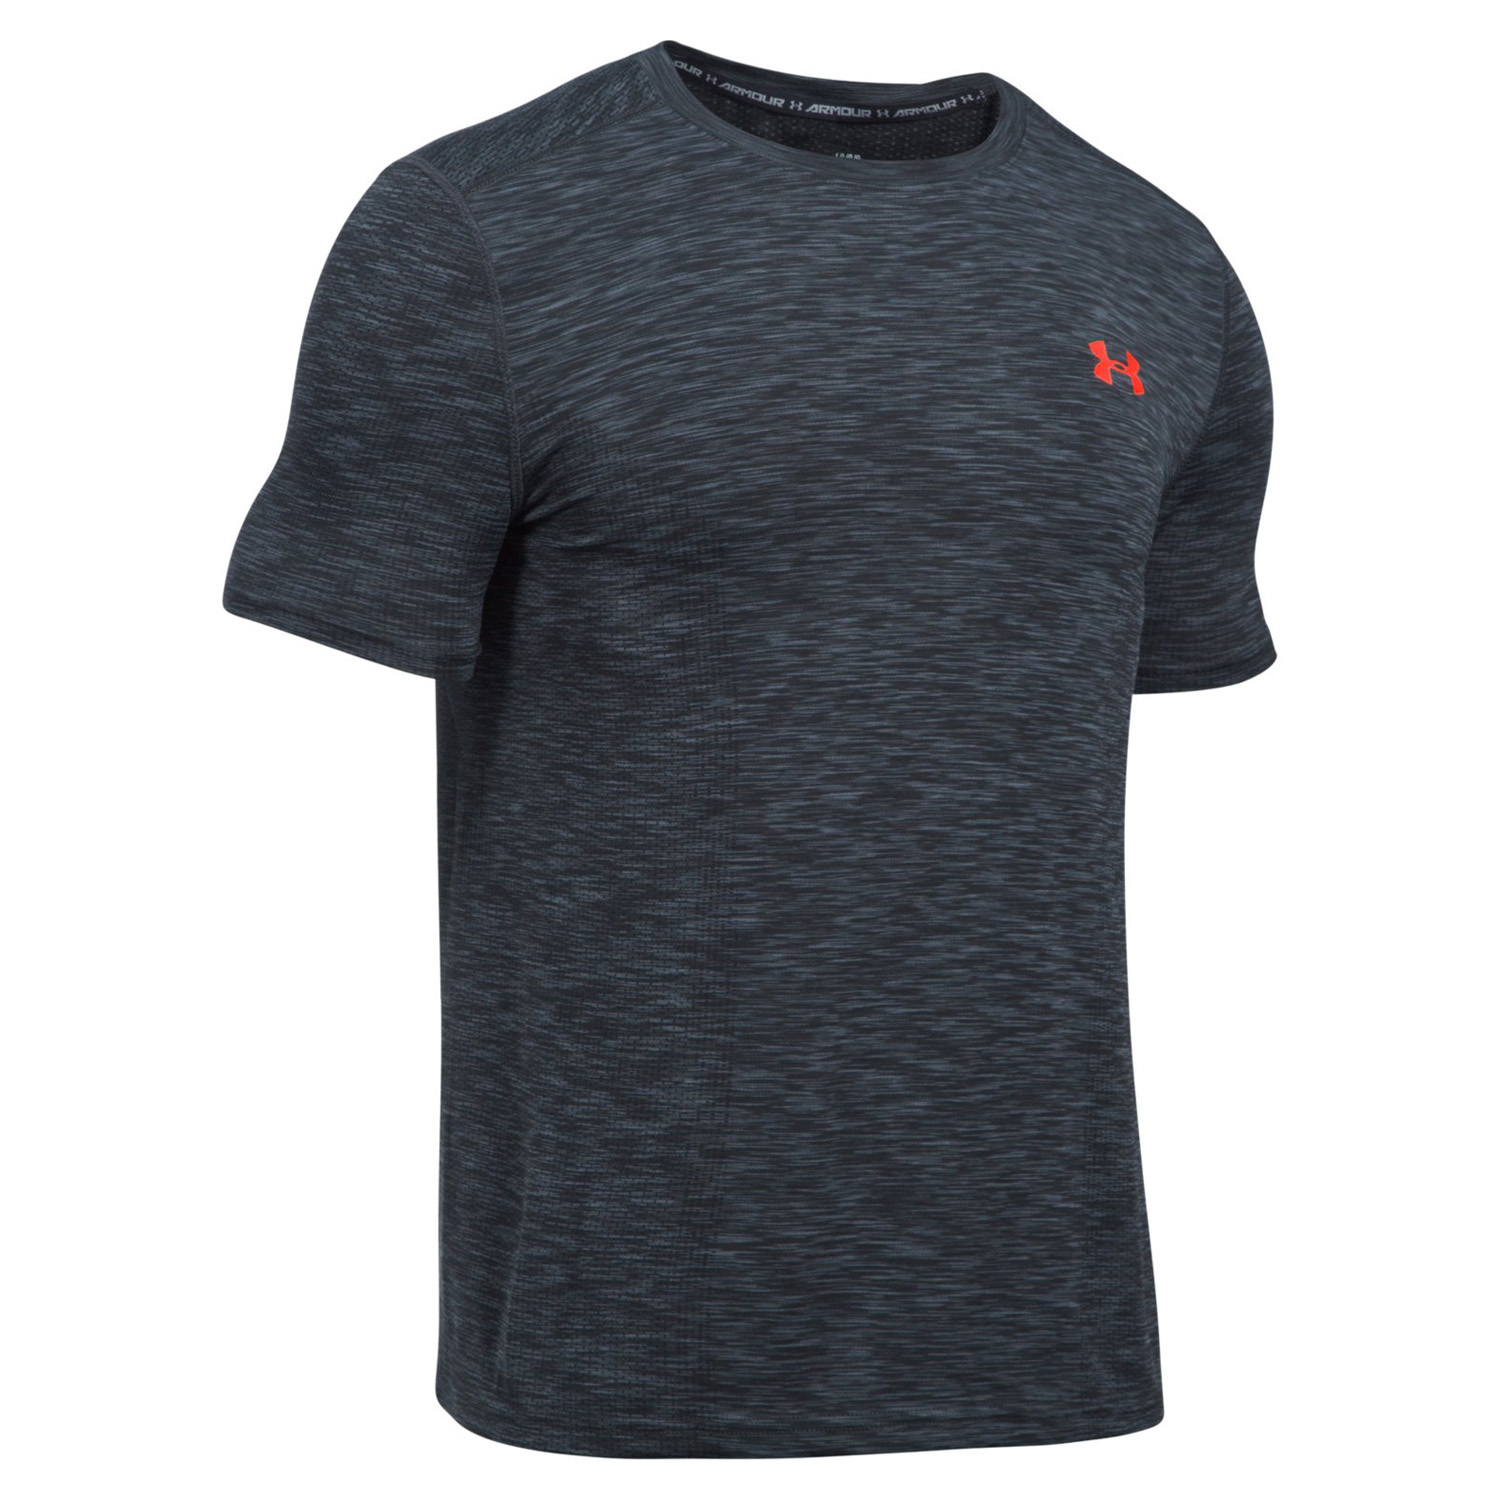 Under armour threadborne apparel men t shirts and for Under armour shirts canada